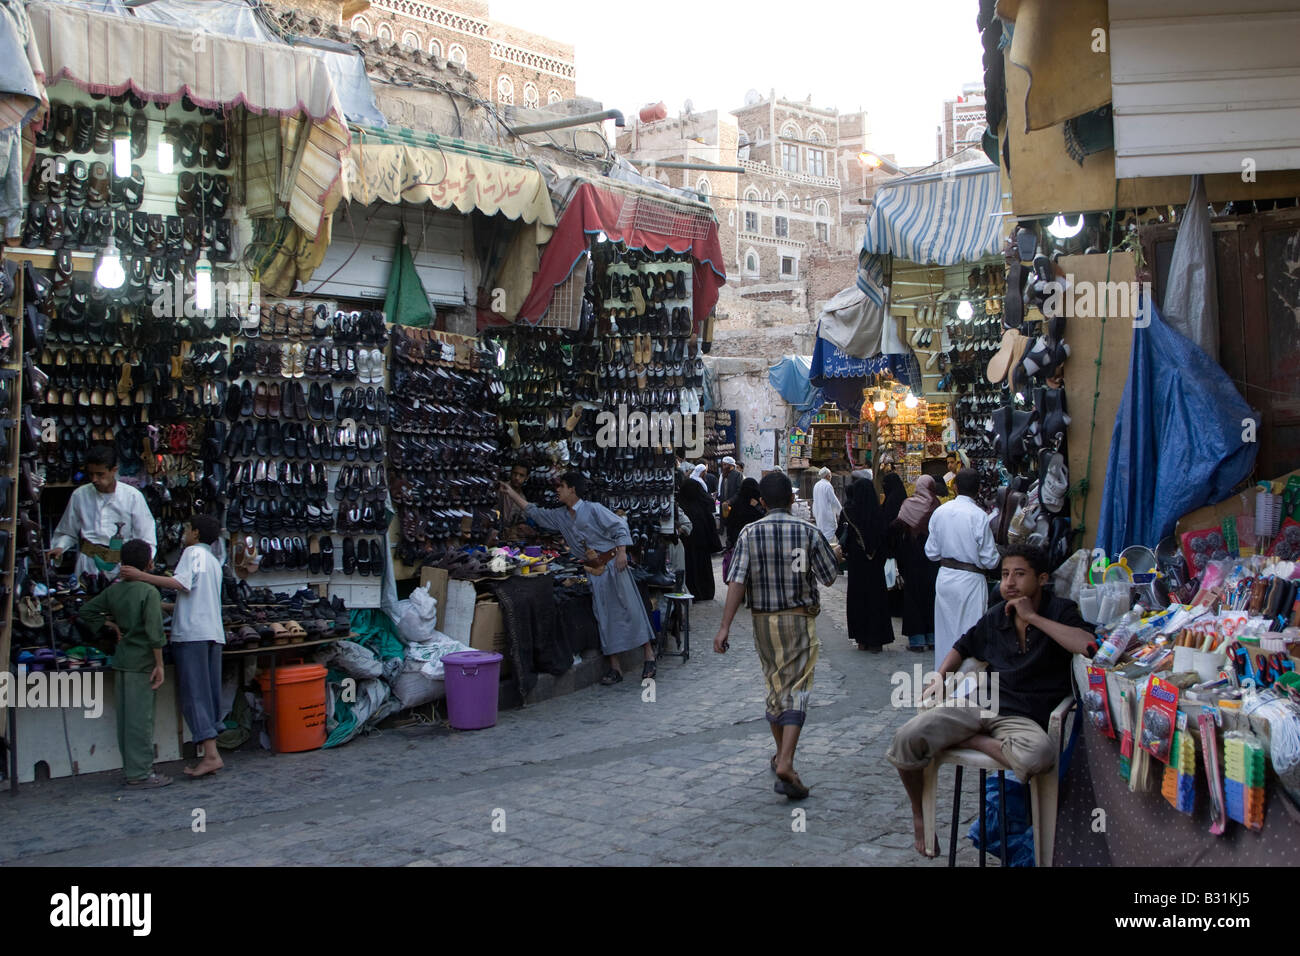 A Dusk scene from the market in the Old City of Sana a capital of Yemen - Stock Image